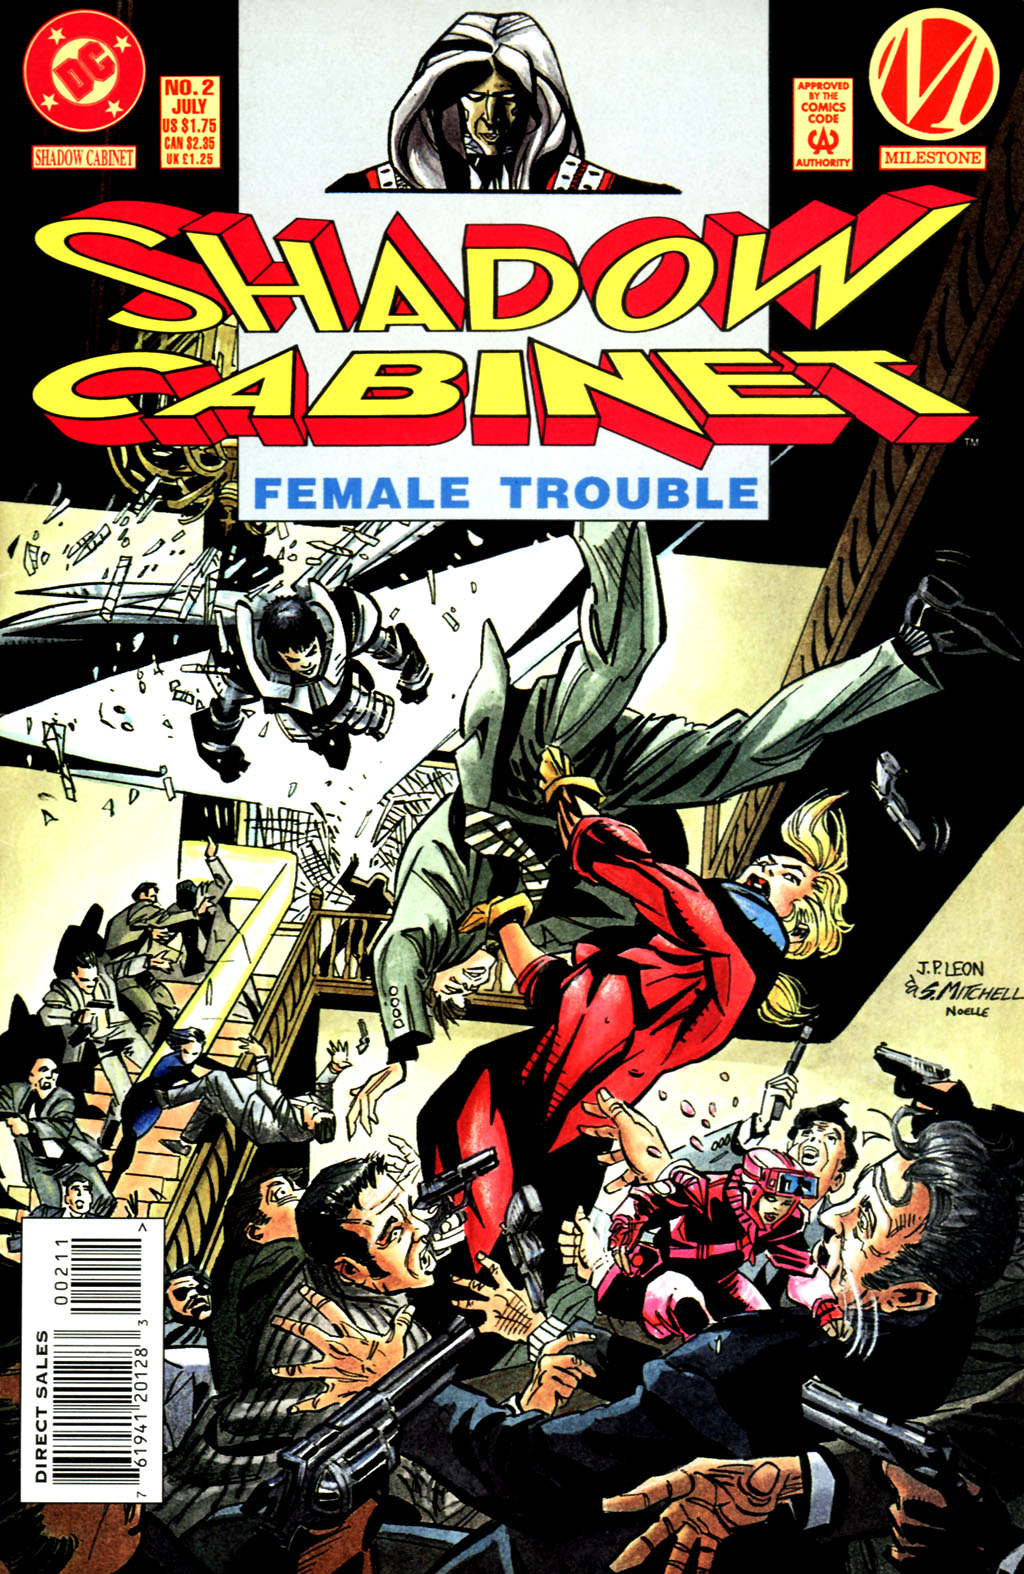 Shadow Cabinet (1994) #2, cover penciled by John Paul Leon & inked by Steve Mitchell.